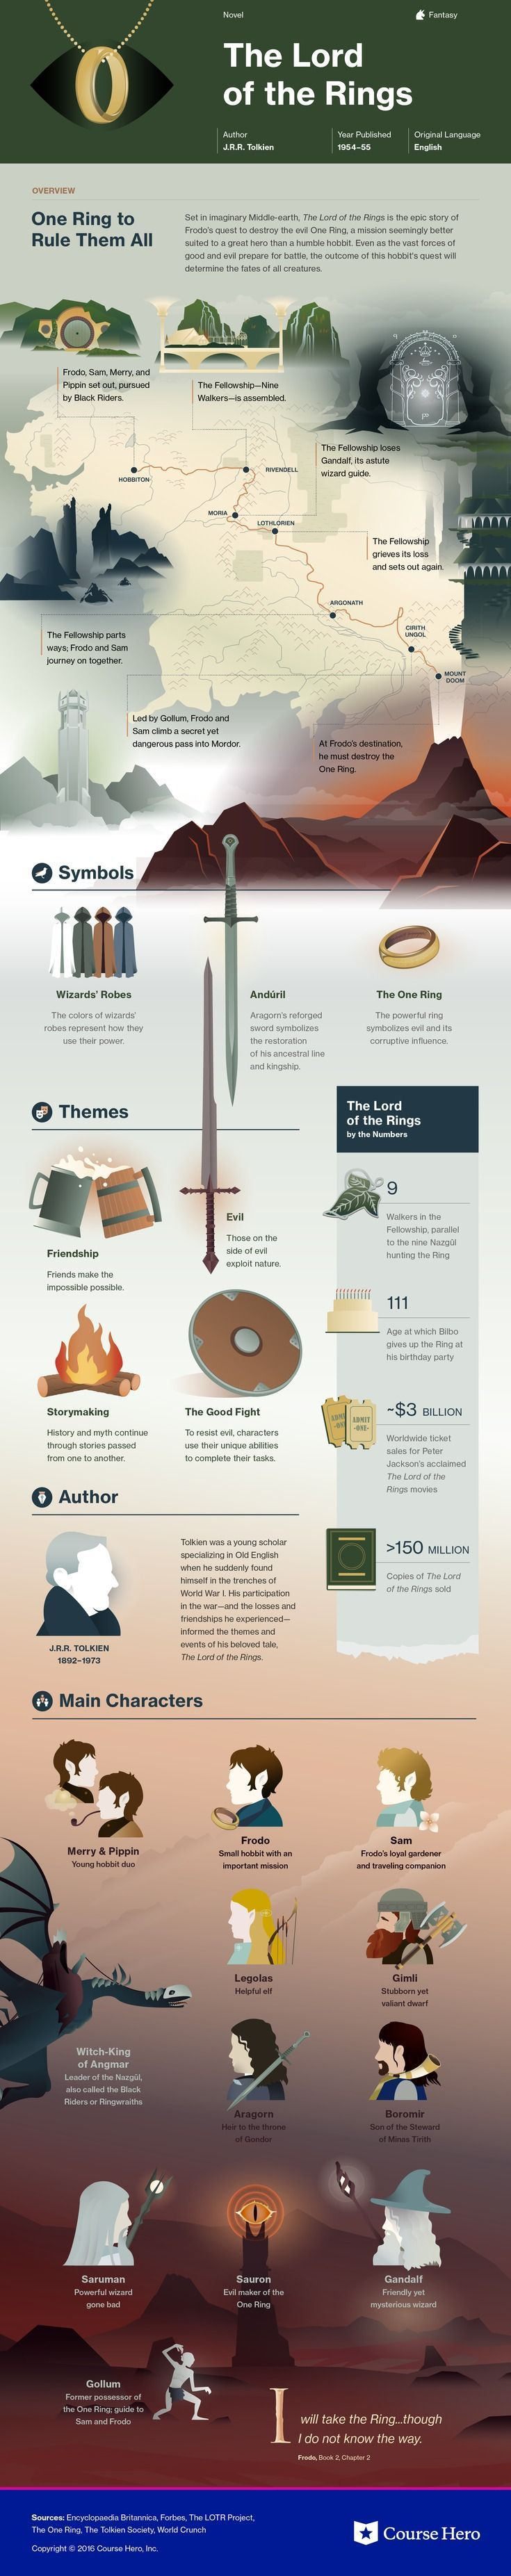 the hobbit study guide questions and answers